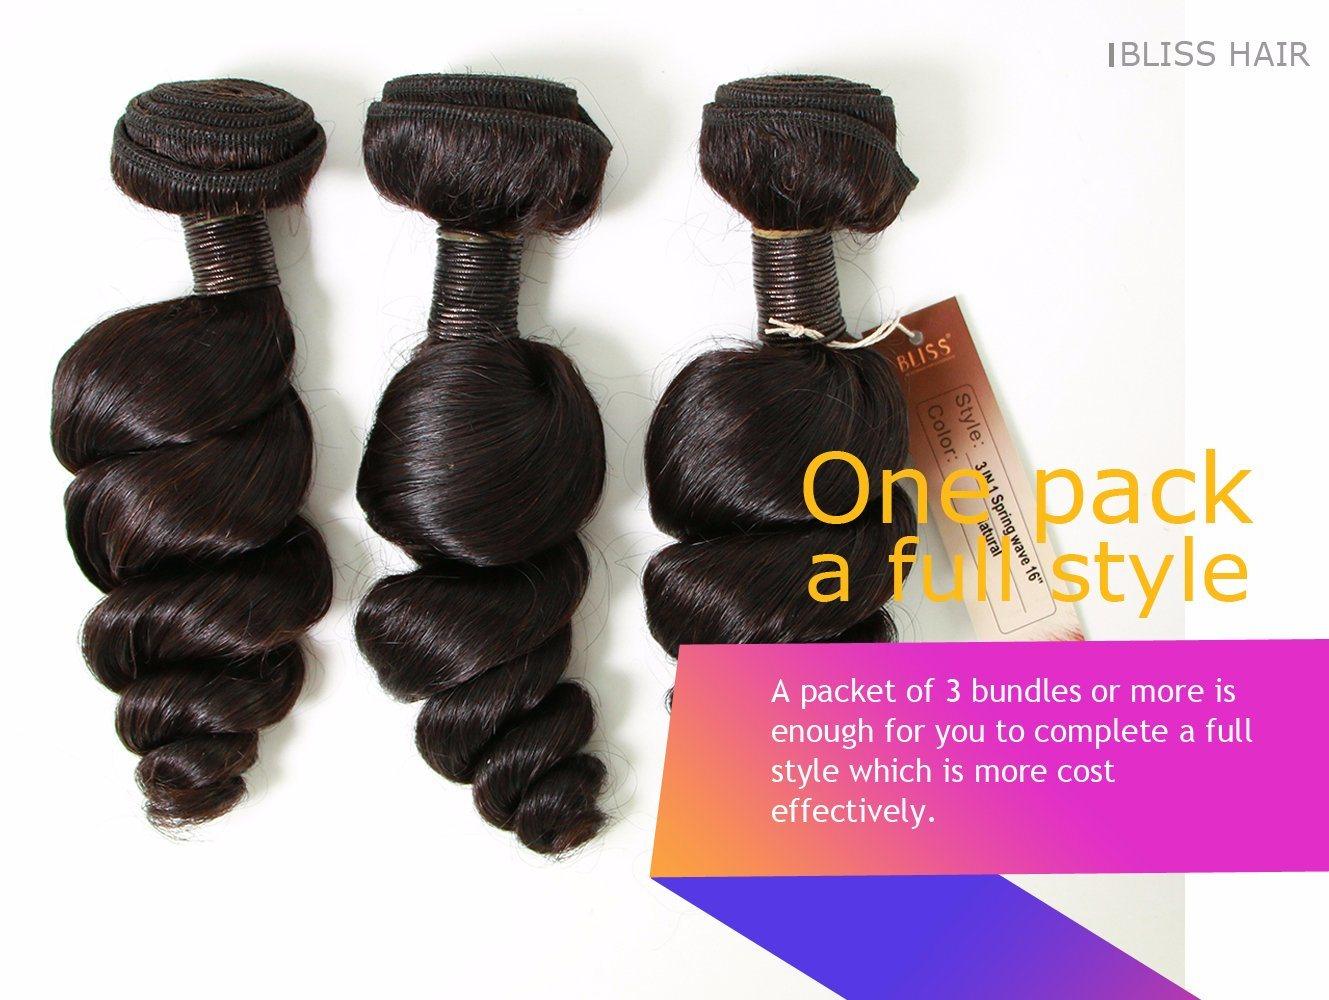 Brazilian Virgin Hair Spring Wave Natural Color 3 Pieces in One Pack